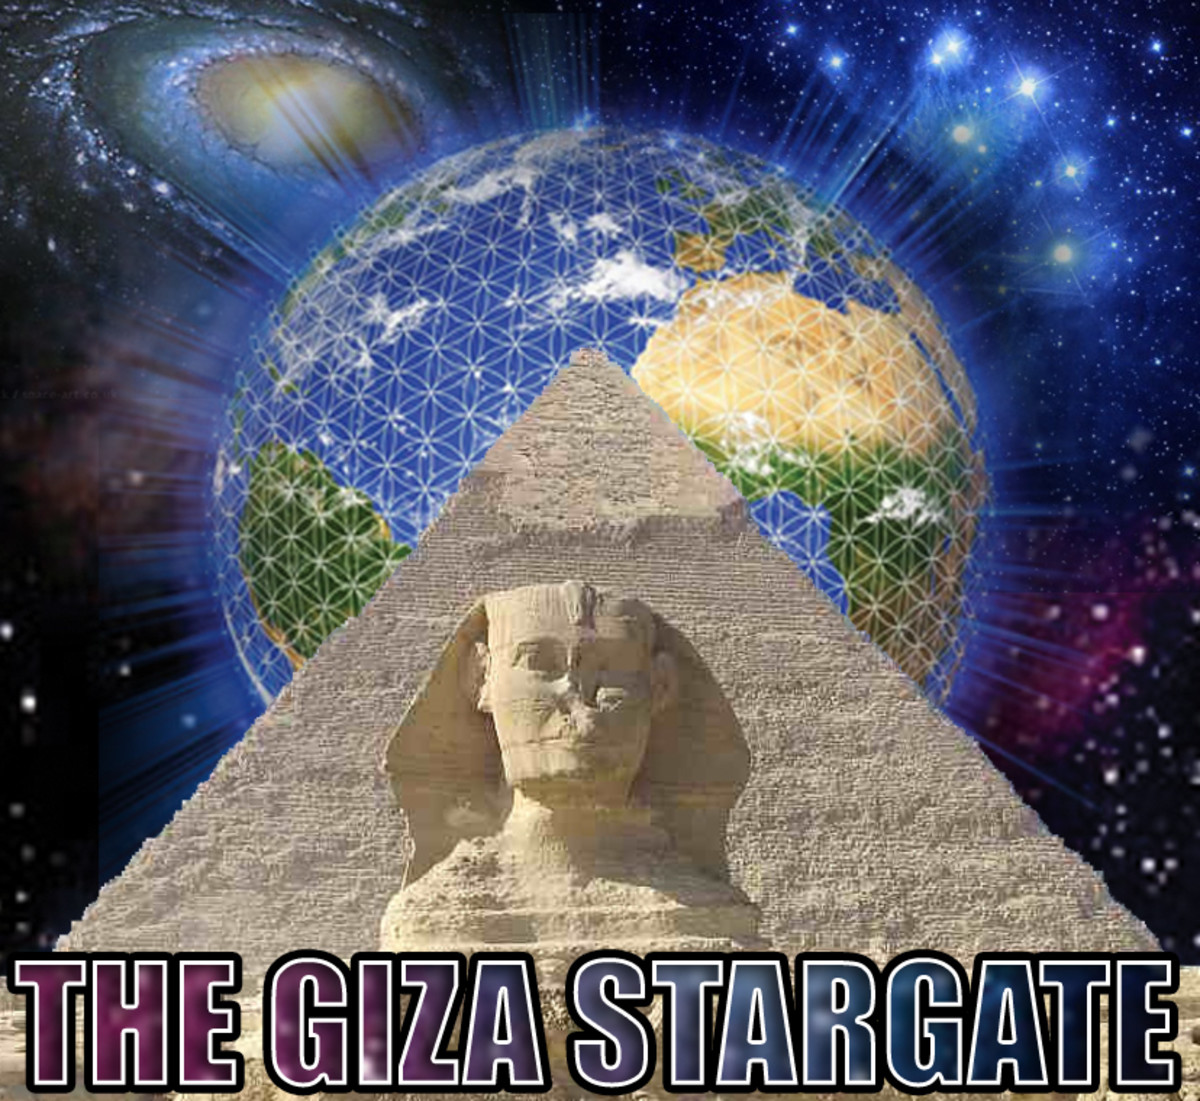 Both the Sphinx and the Giza Pyramid were built to cover an ancient portal or star gate system that allows the users to travel the stars without space ships.